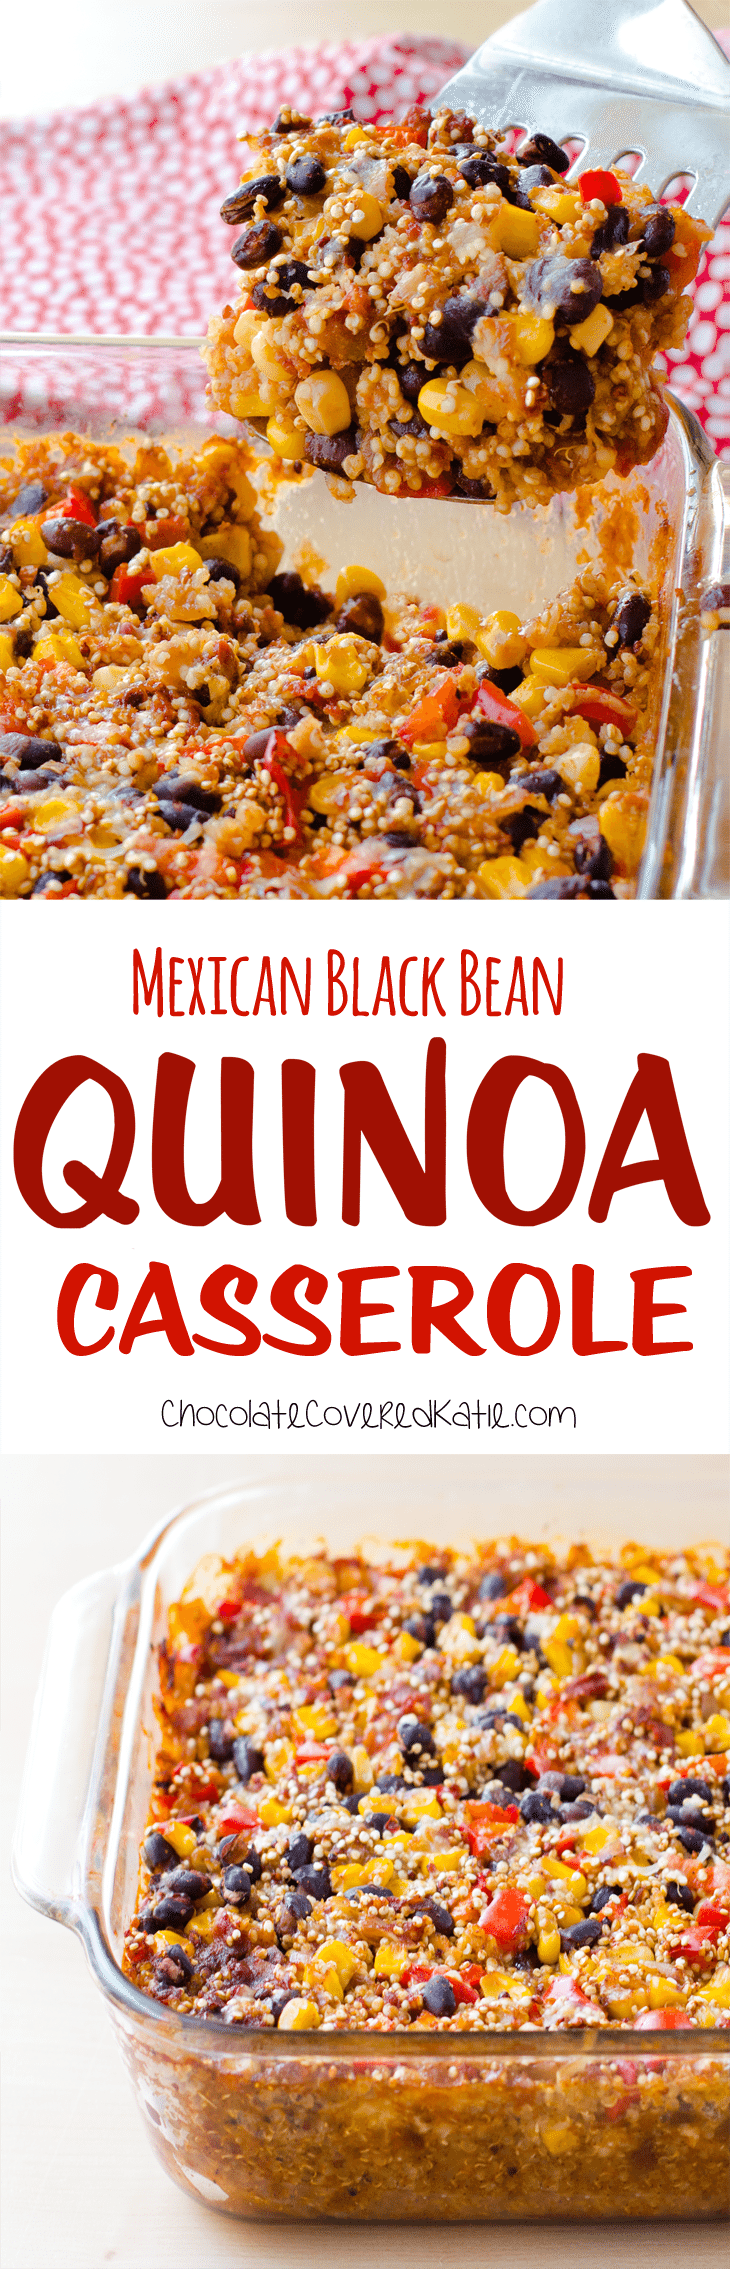 Super Easy To Make & Healthy Quinoa Casserole, Just Mix The Ingredients  Together And Throw